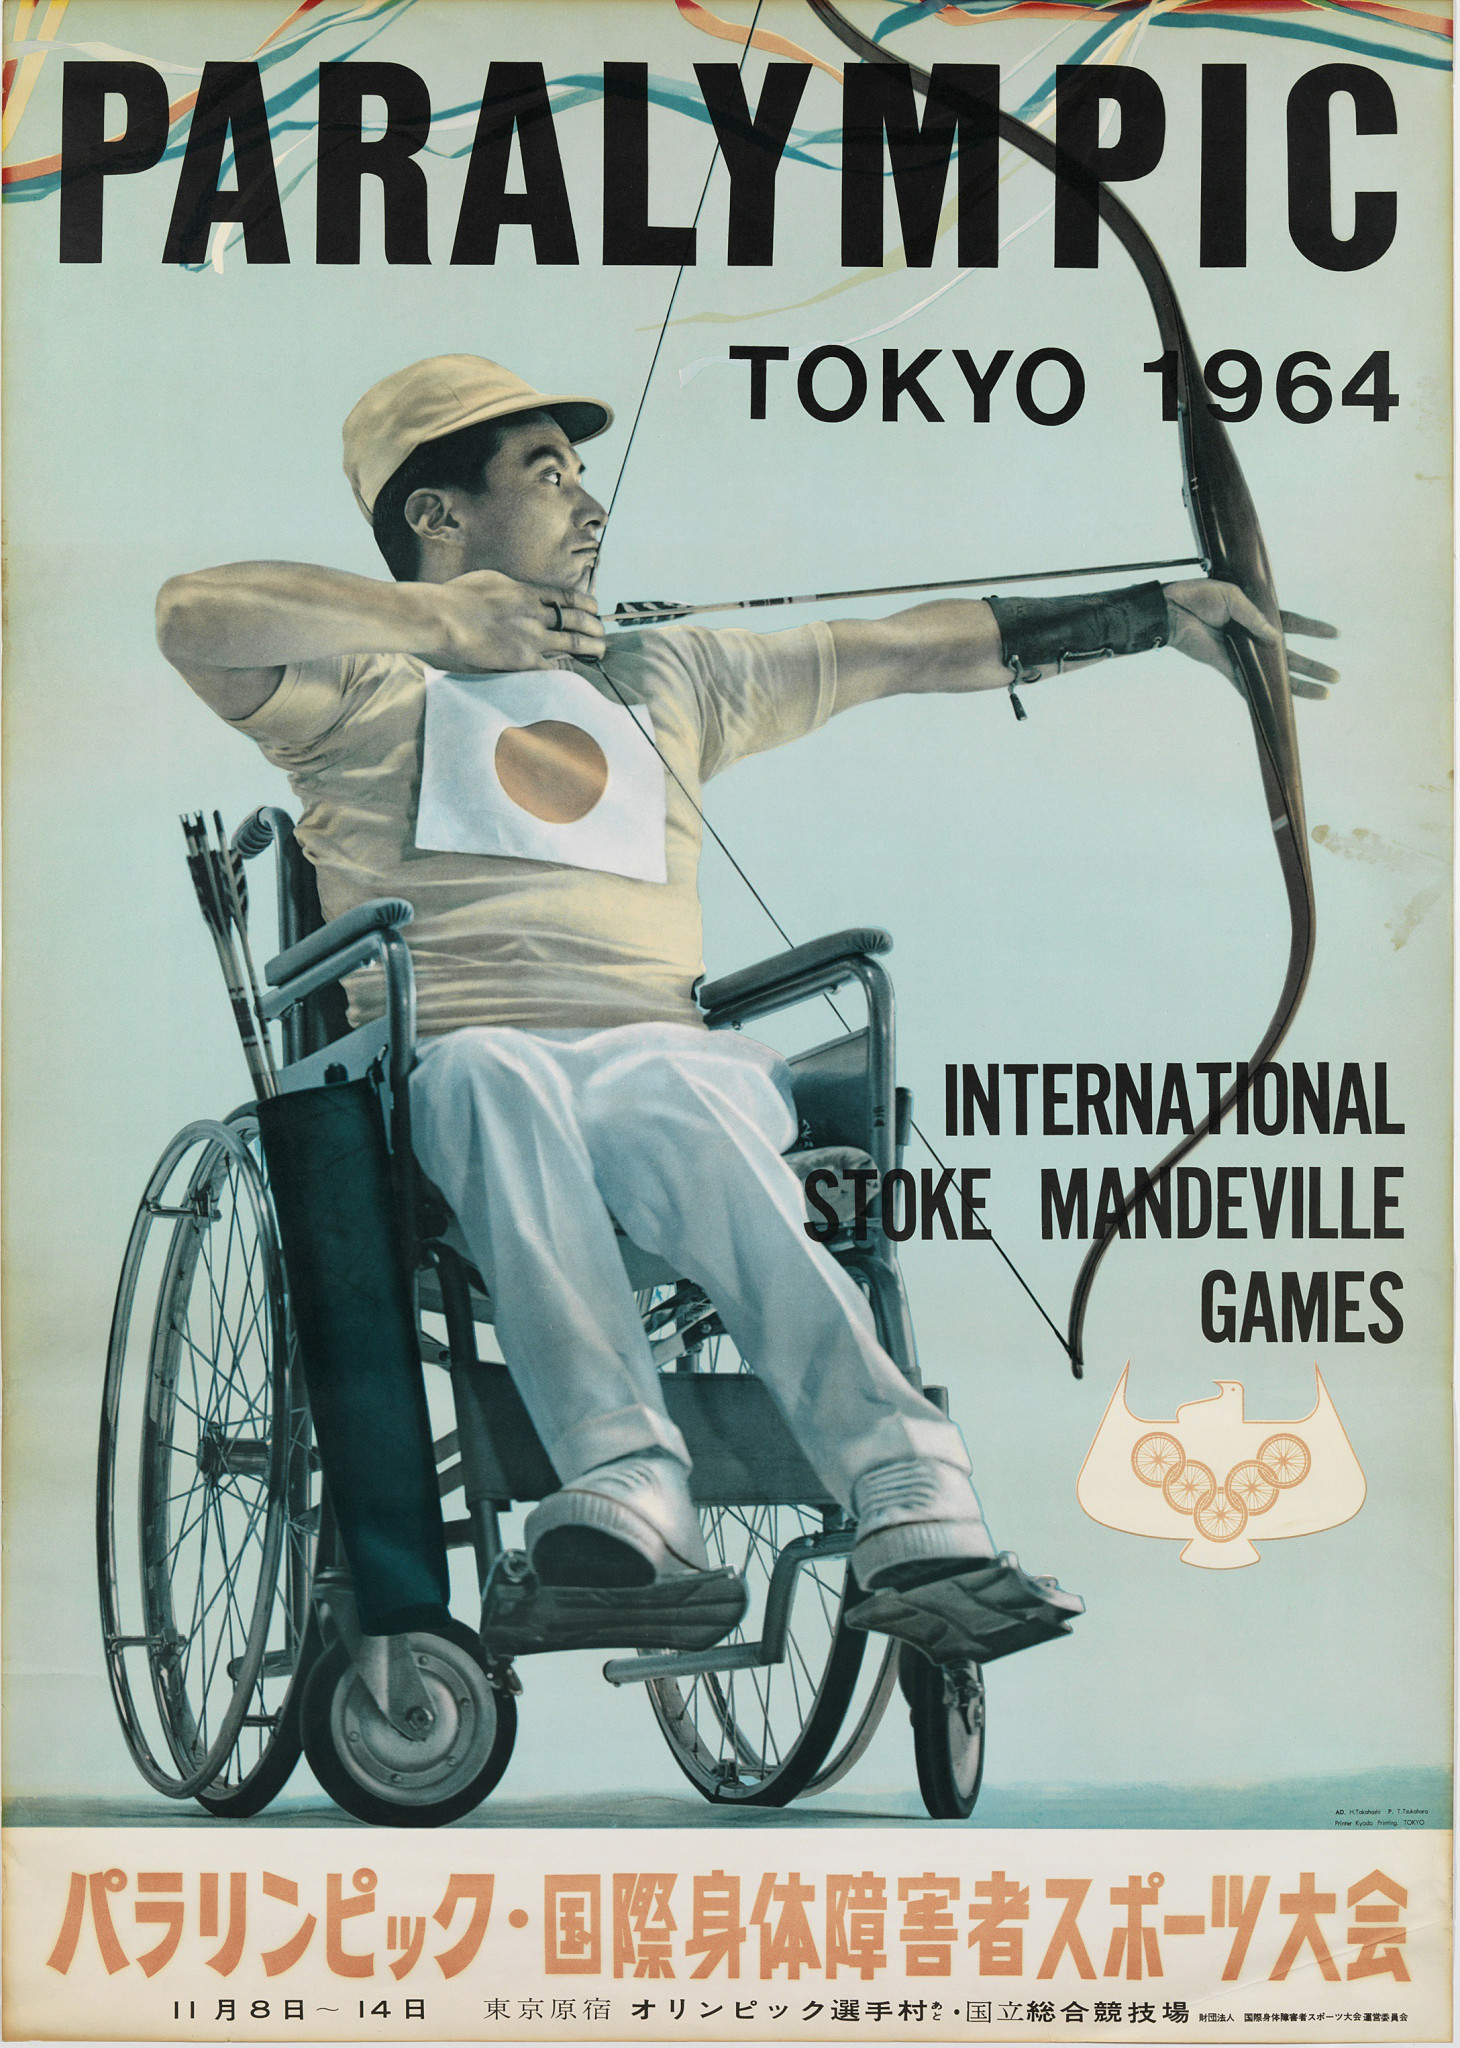 Tokyo 1964 is now known as the second Paralympic Games but at the time were called the